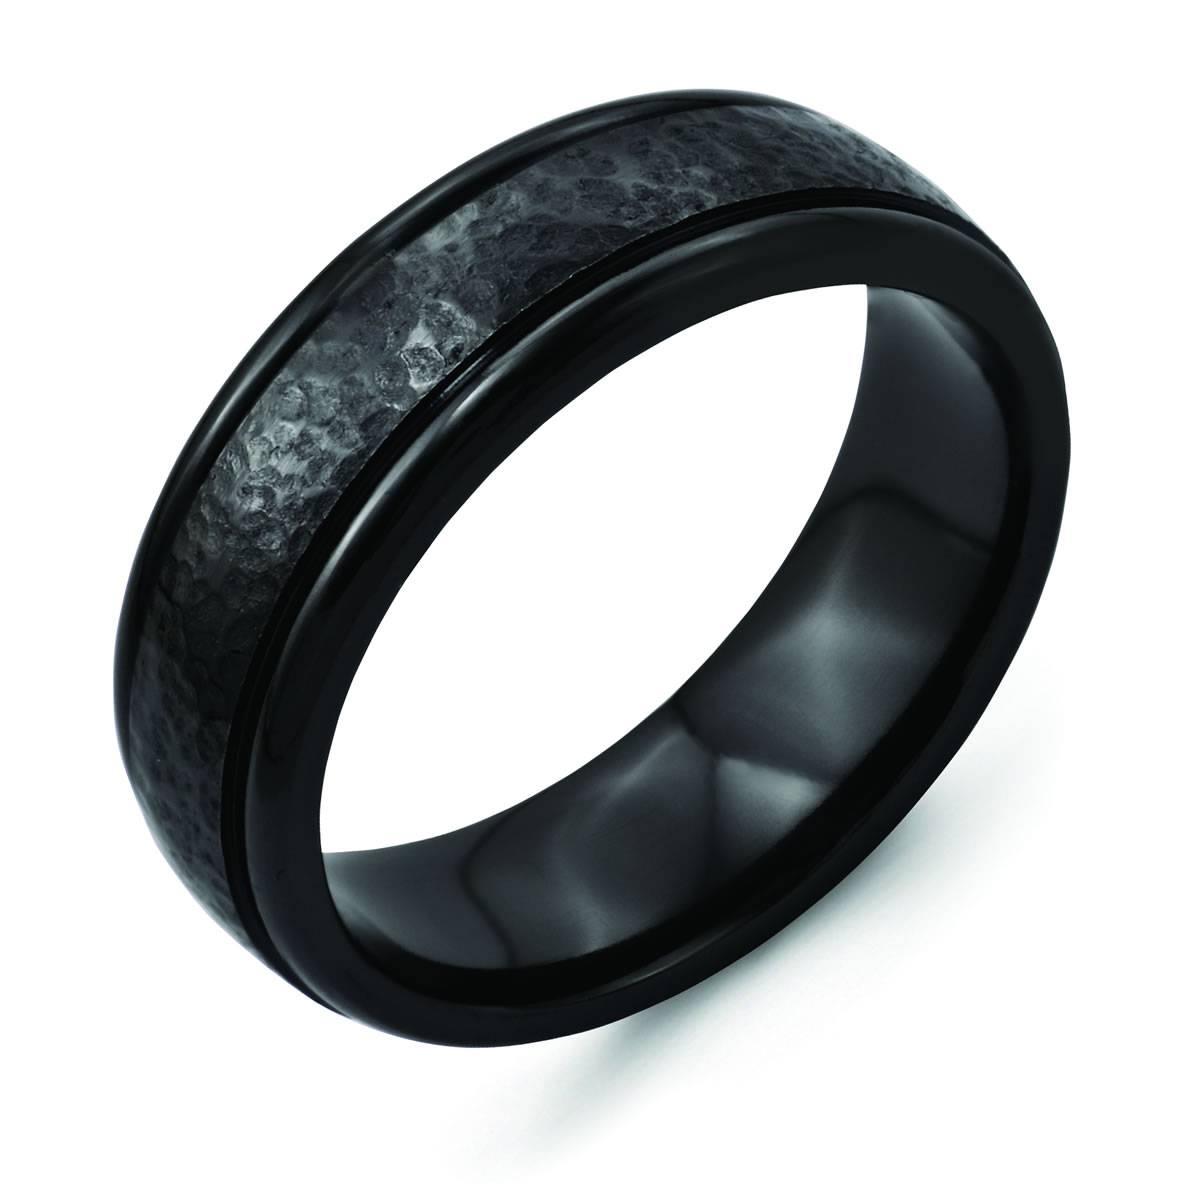 Titanium Black Ti Hammered Ridged Edge 7Mm Brushed Men's Wedding For Titanium Men Wedding Bands (View 9 of 15)